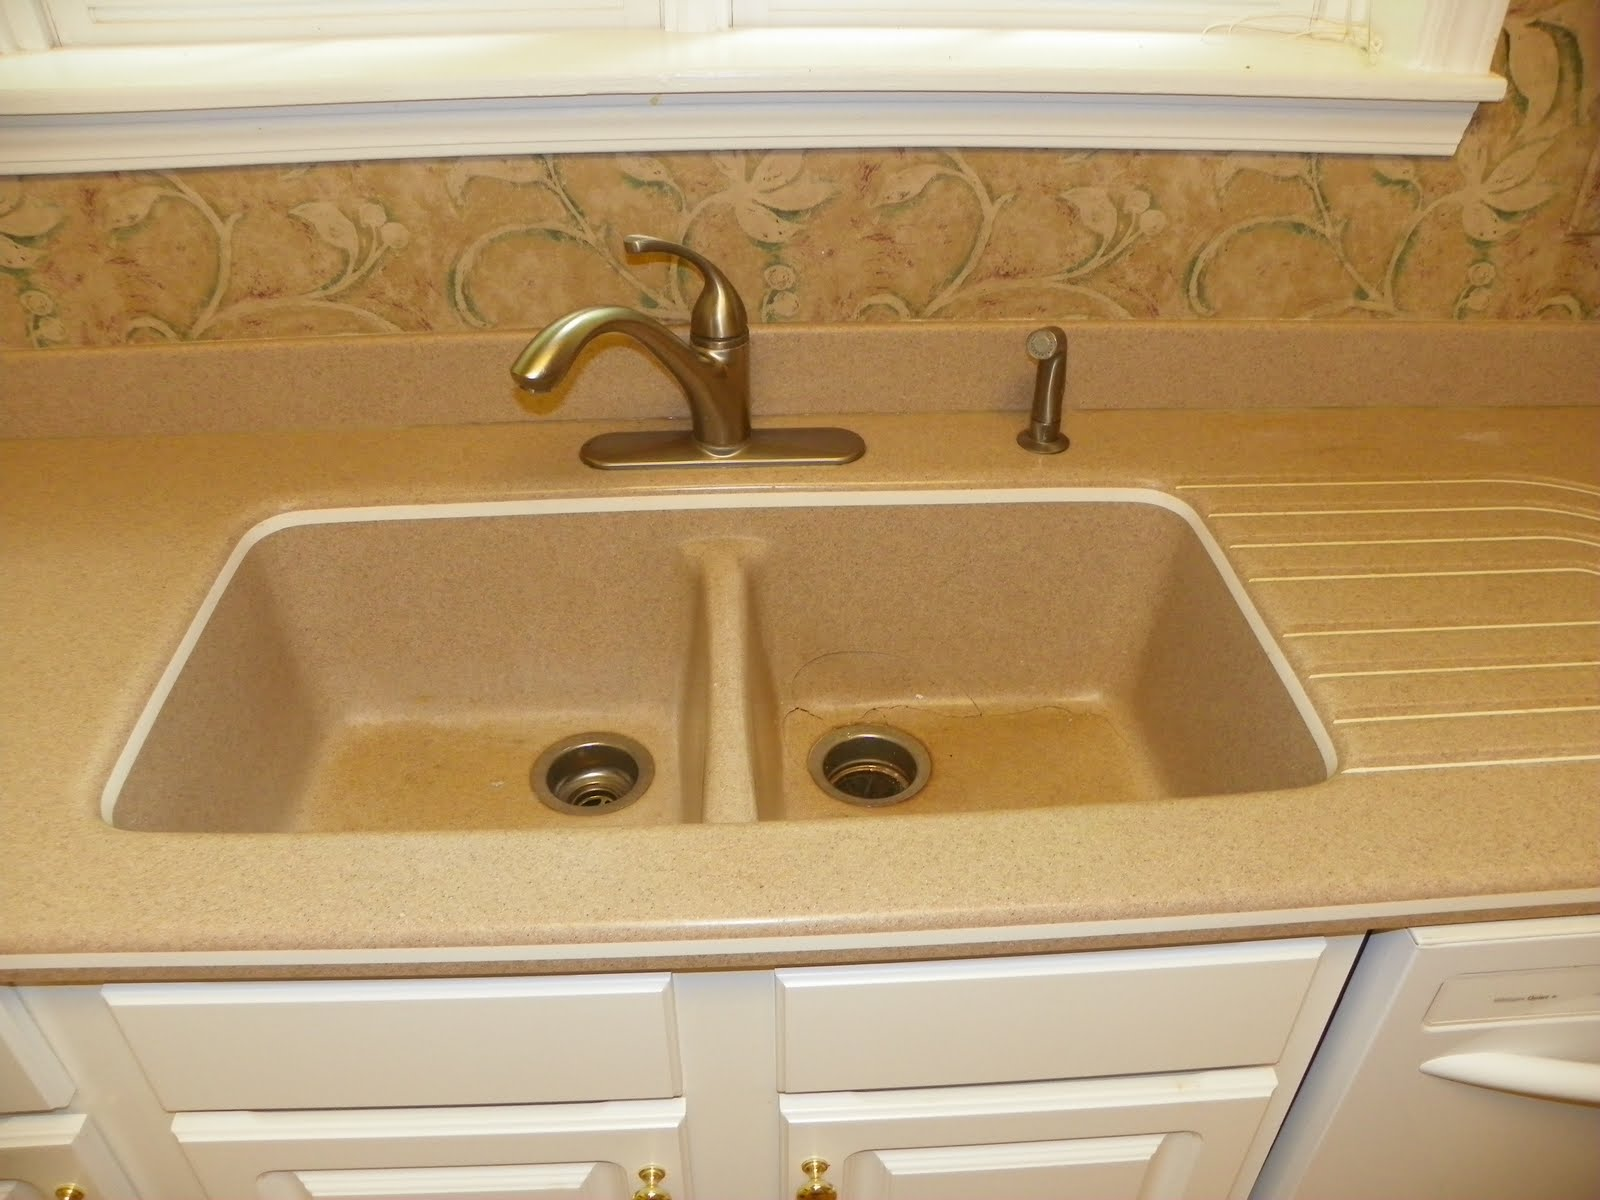 the solid surface and stone countertop repair blog: replace